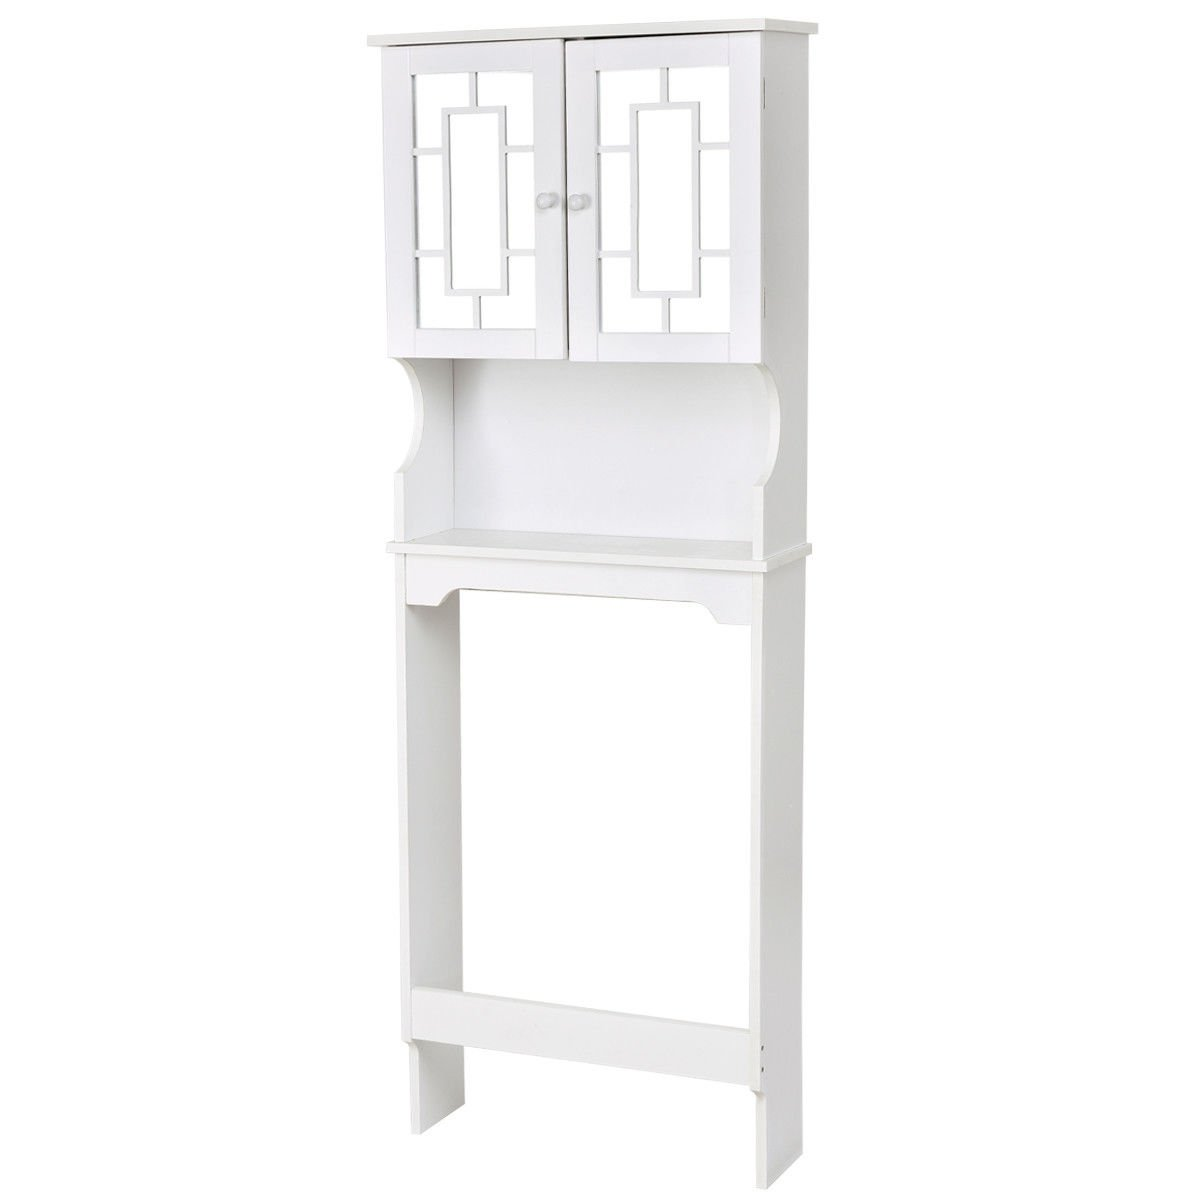 White Bathroom Over The Toilet Space Saver Storage Cabinet Shelf Organizer